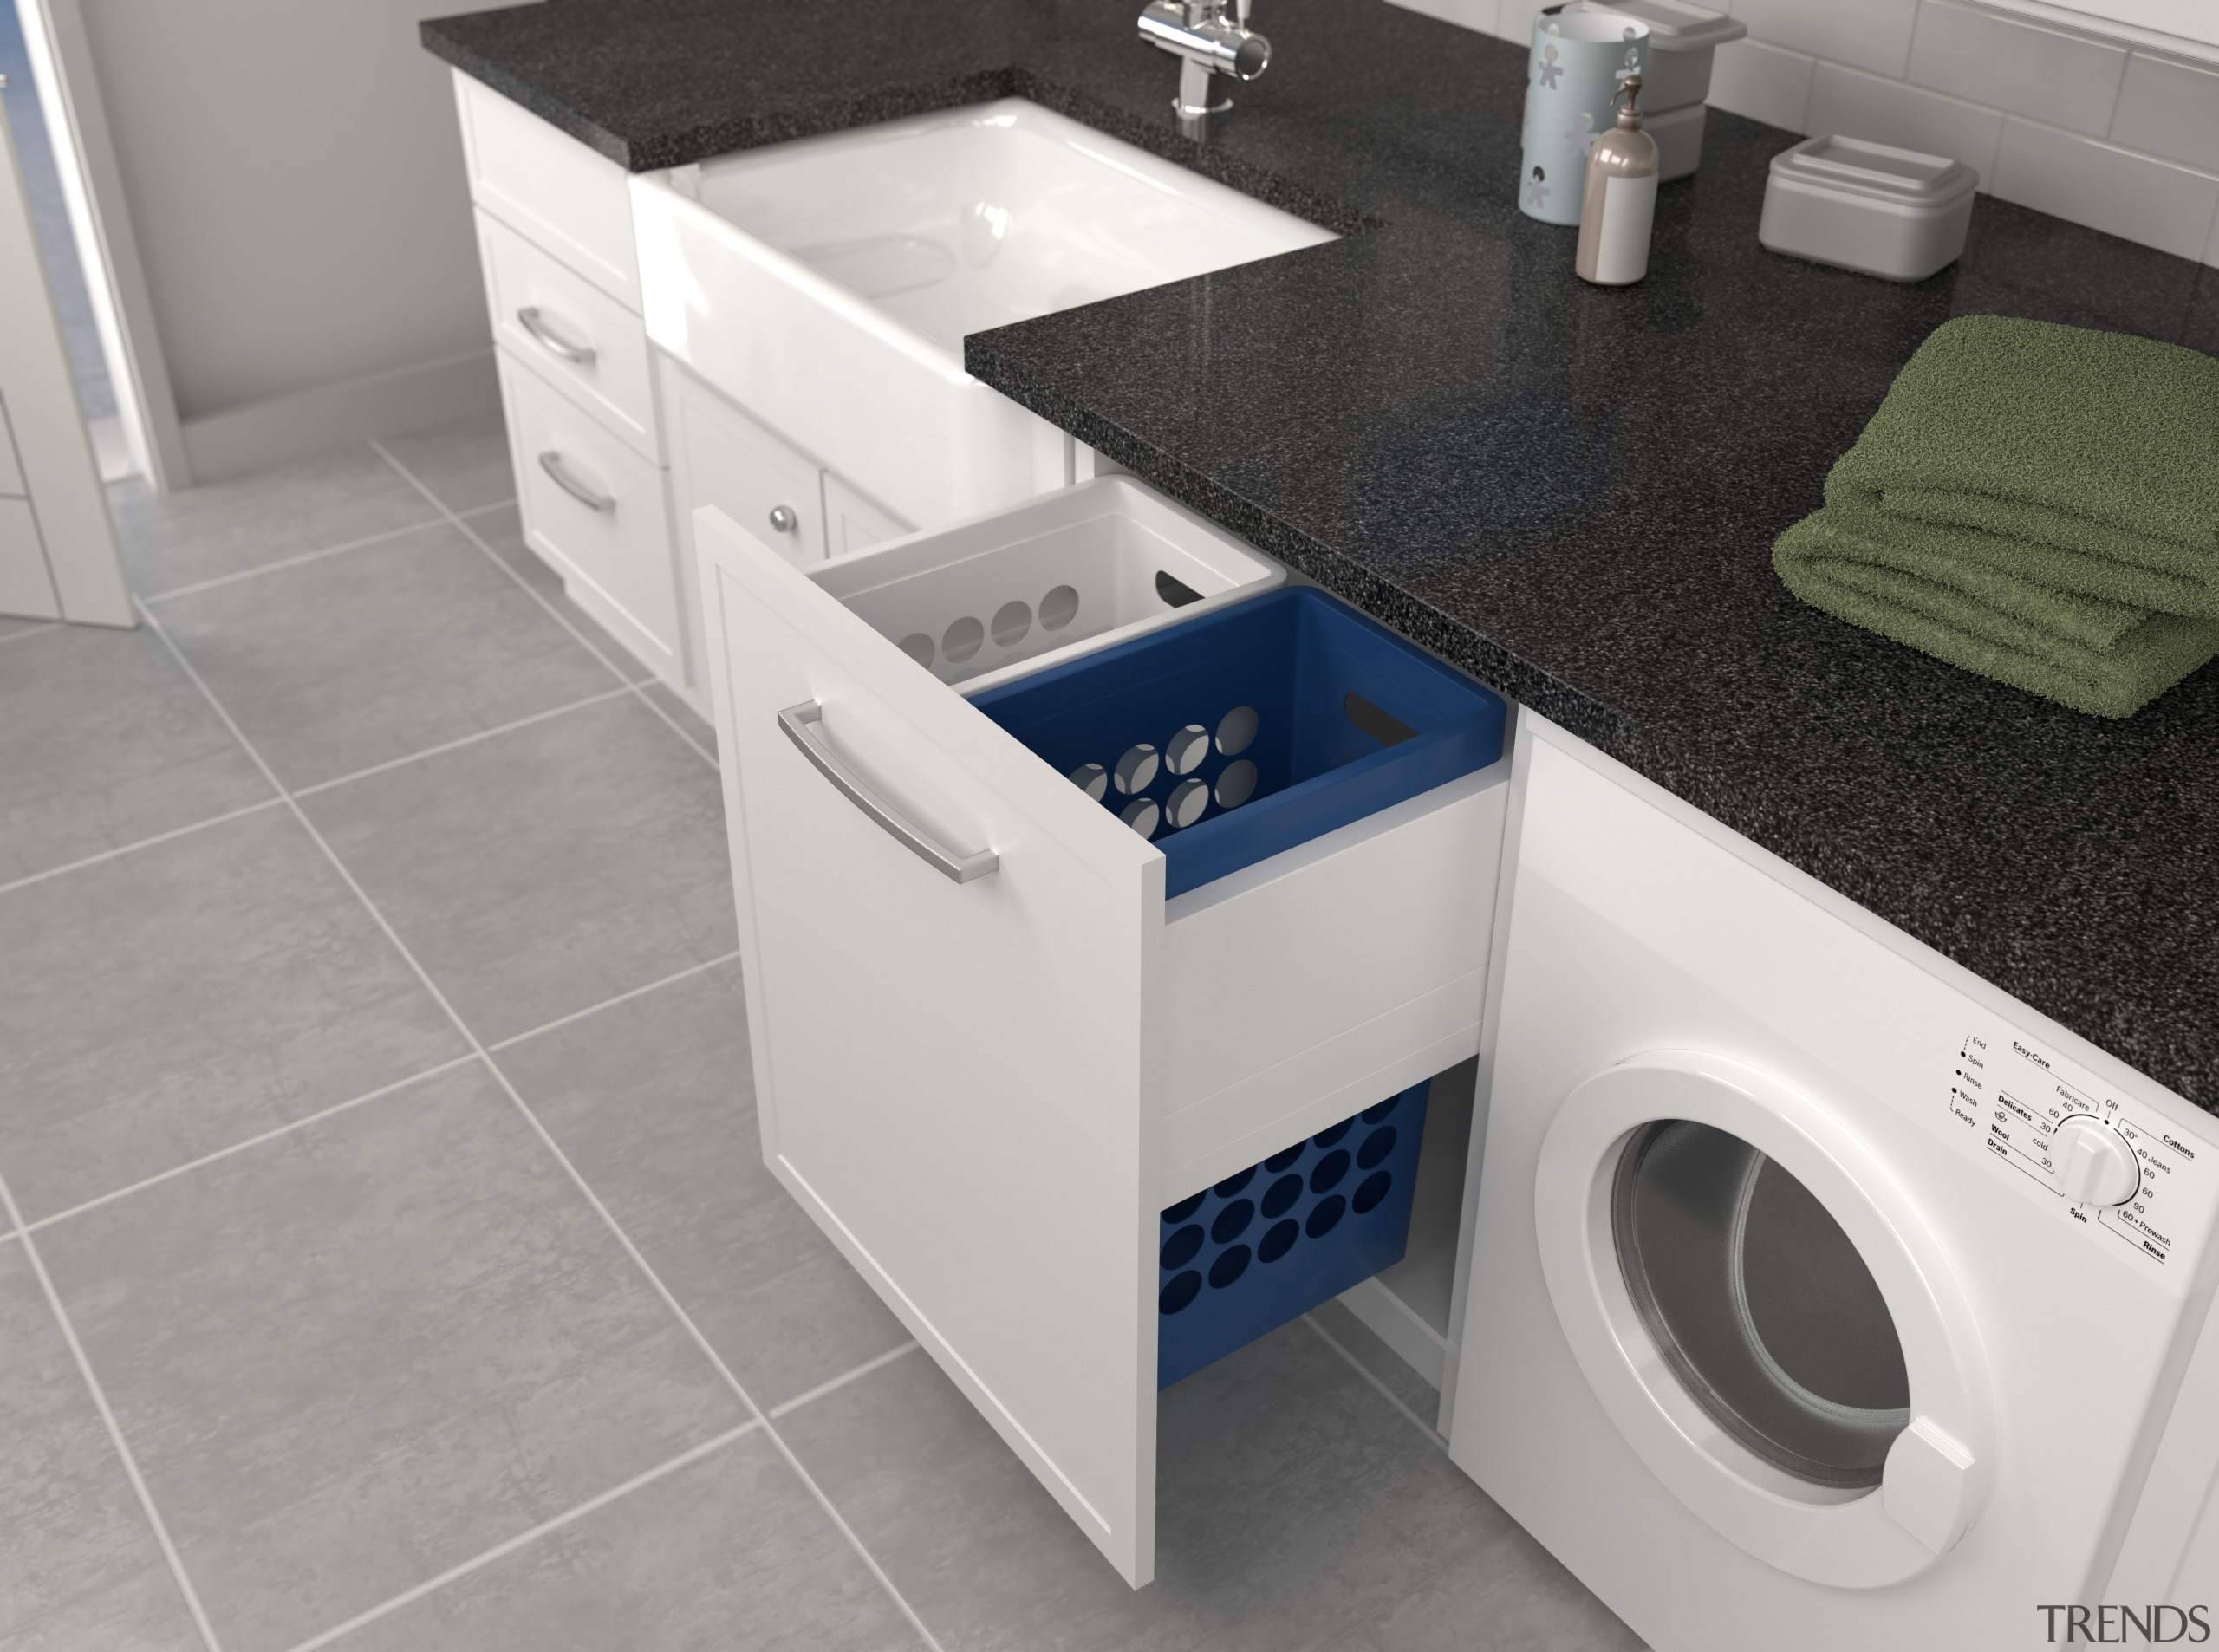 Tanovas range of pull-out systems is specifically designed clothes dryer, home appliance, laundry, laundry room, major appliance, product, product design, sink, washing machine, gray